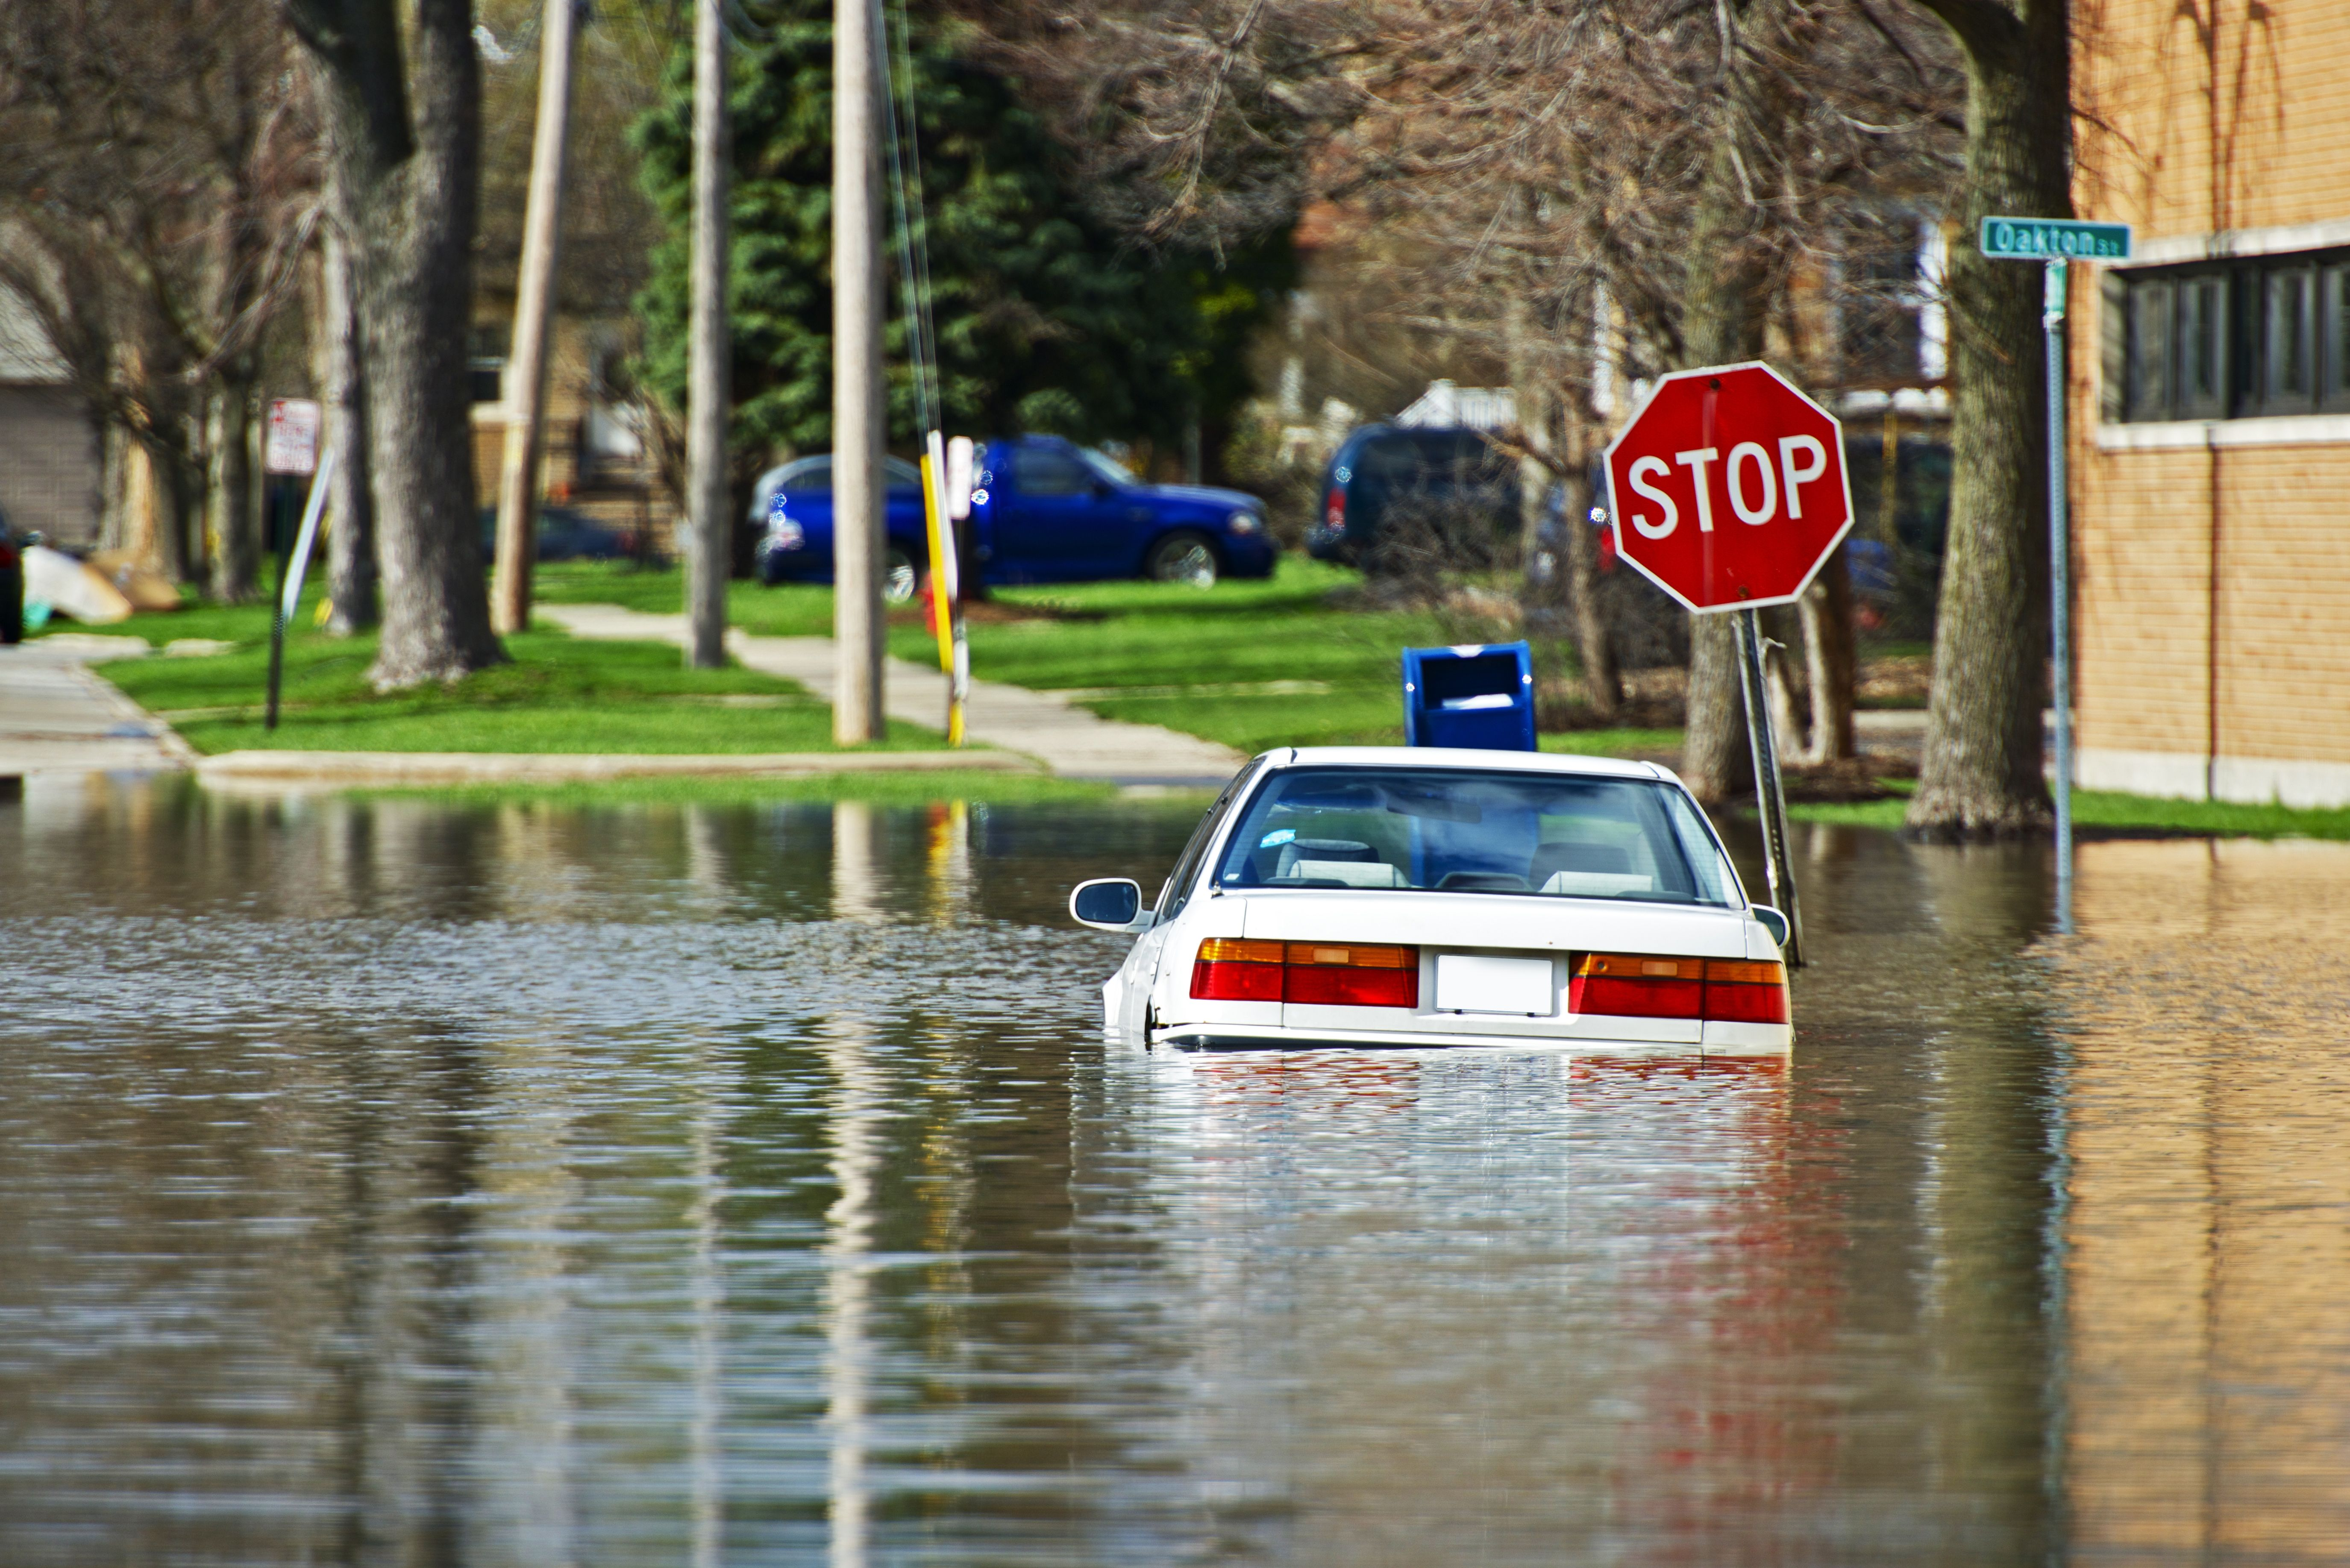 /can-a-data-scientist-drown-a-city-in-3-feet-of-water-cz2i3ukk feature image